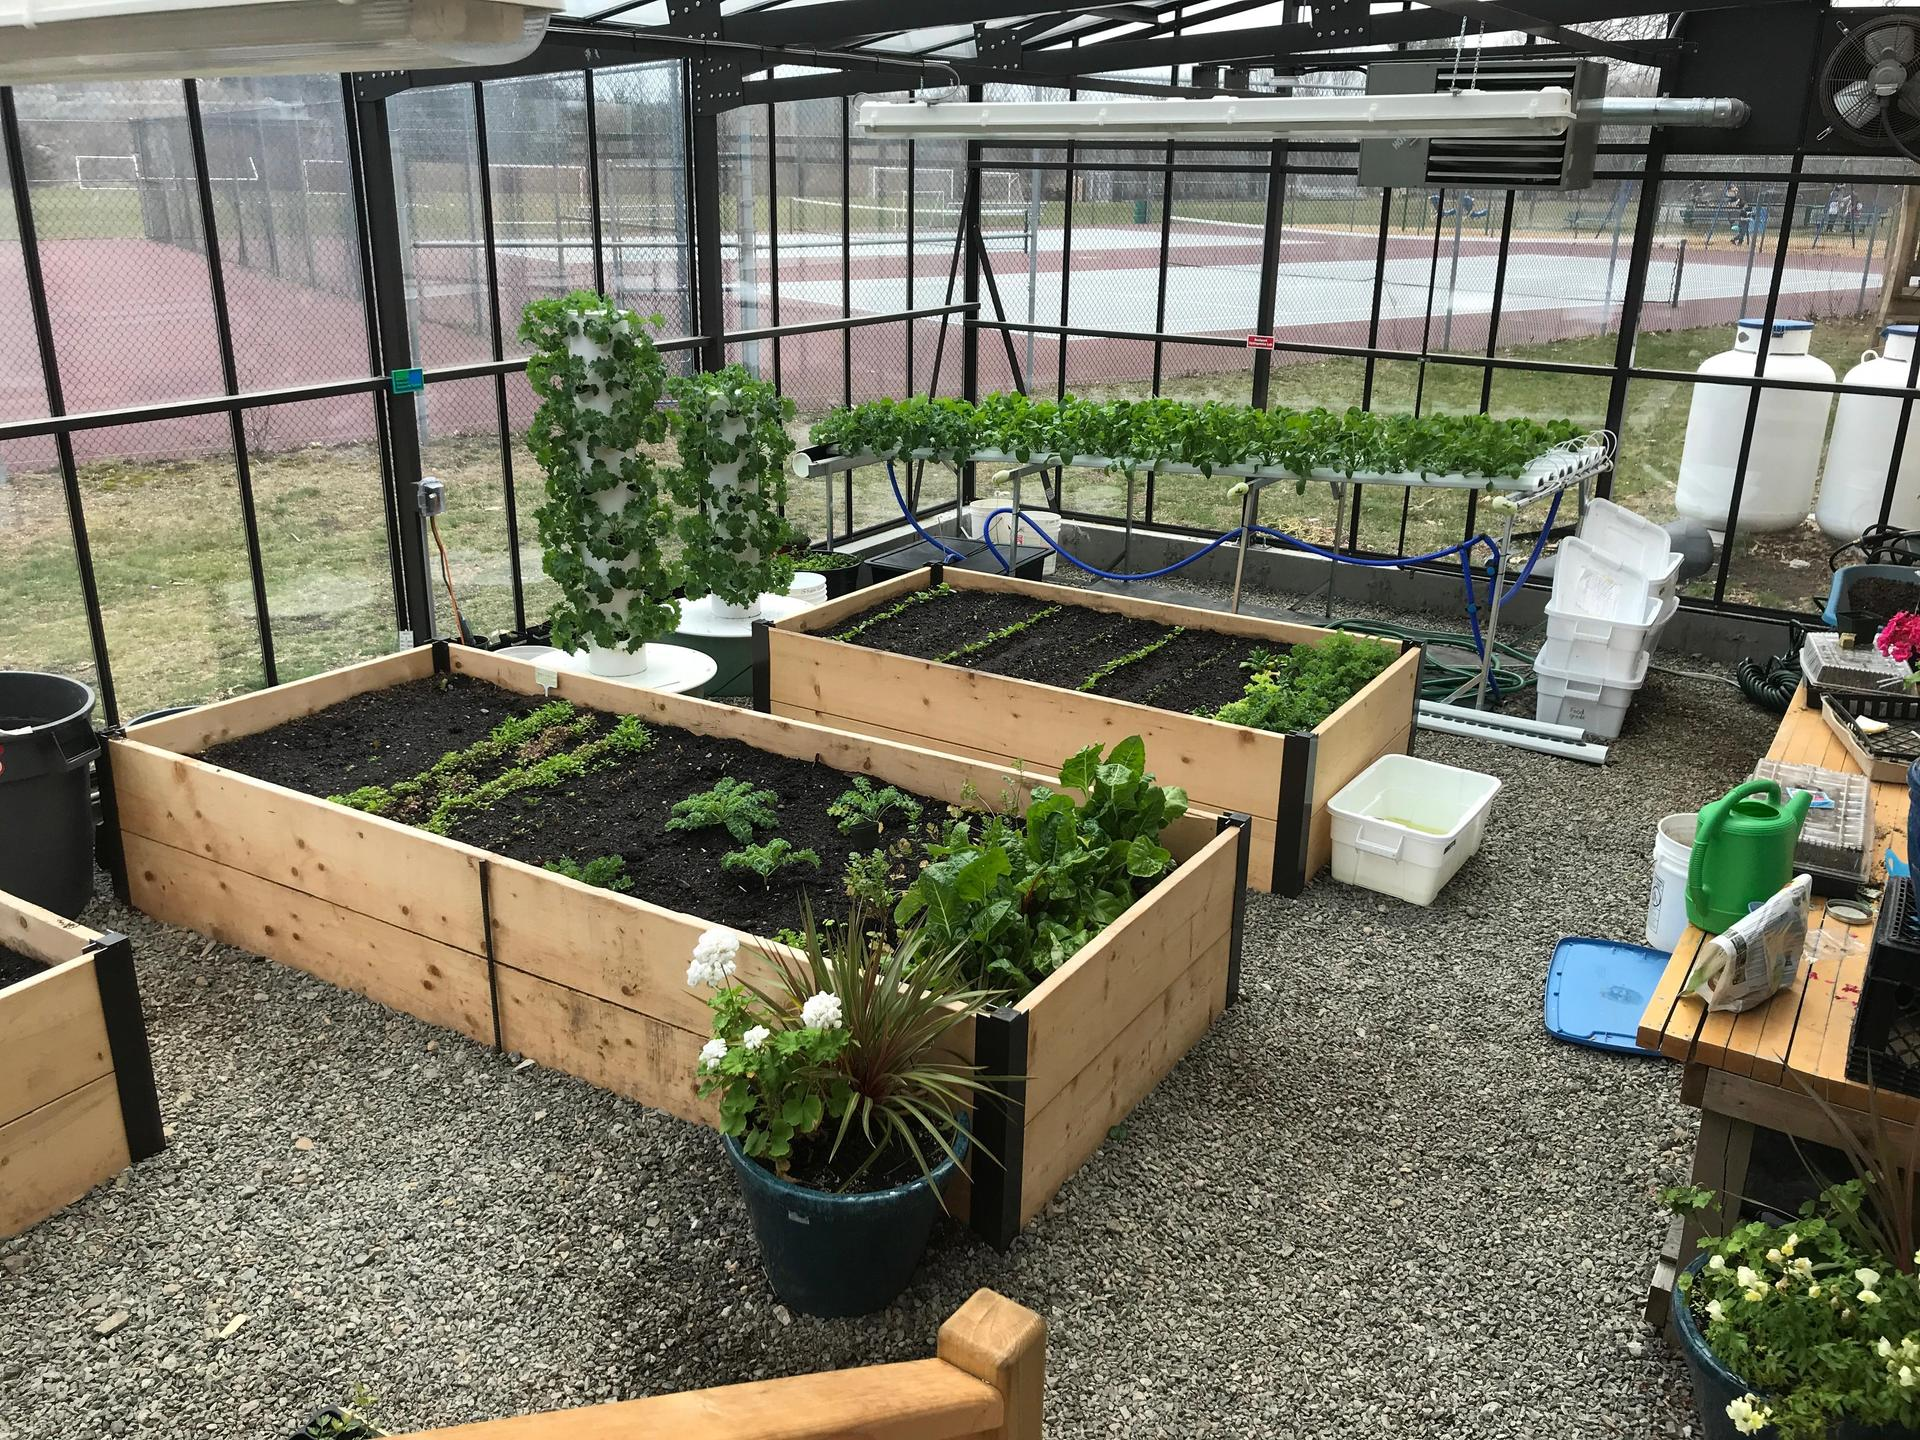 Picture of the inside of the greenhouse